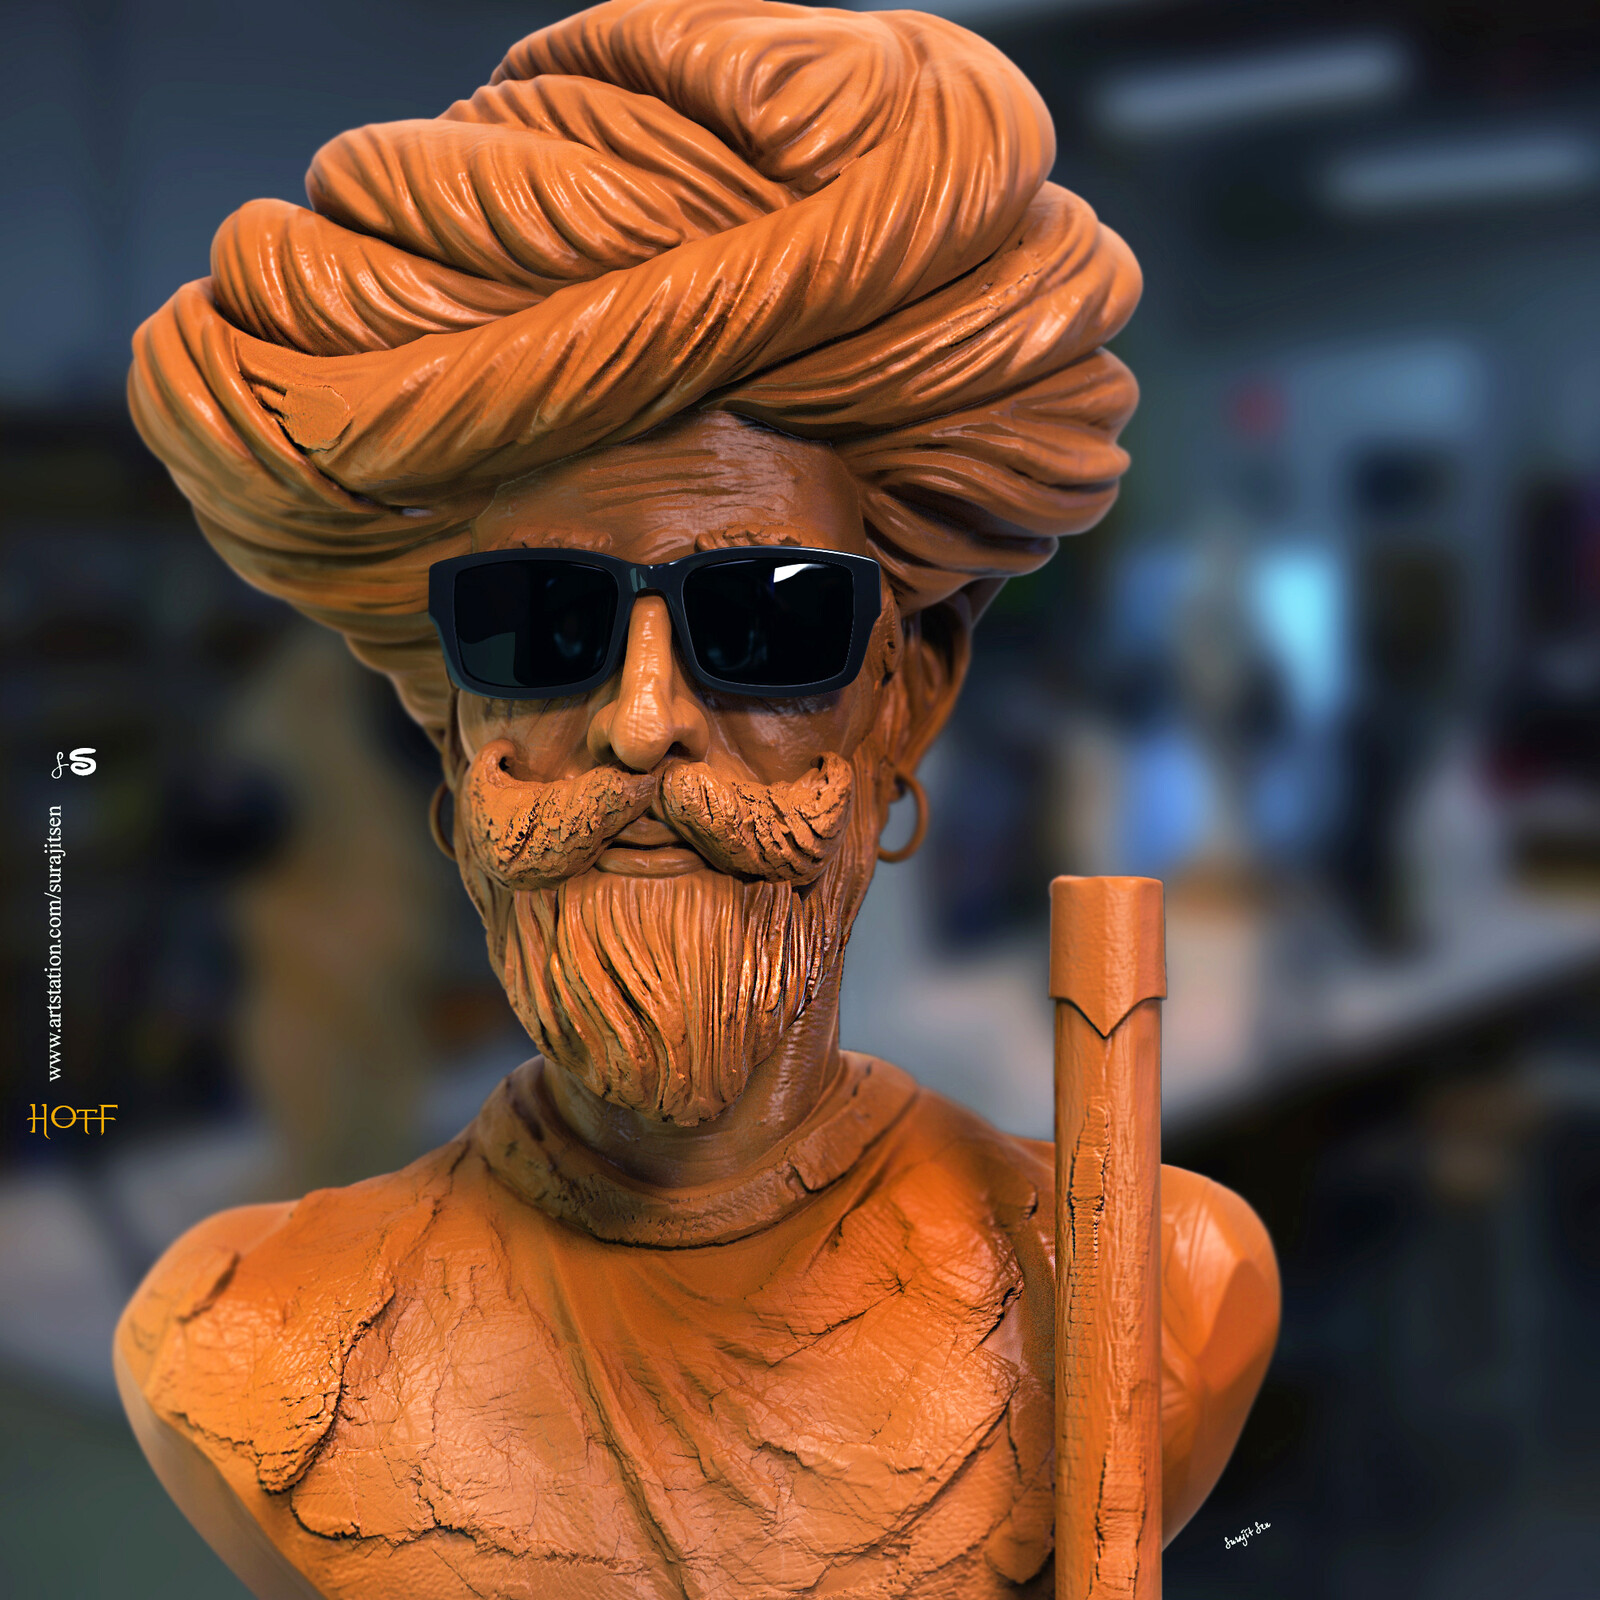 One of my free time Digital Sculptures. Wish to share. Head of the family.